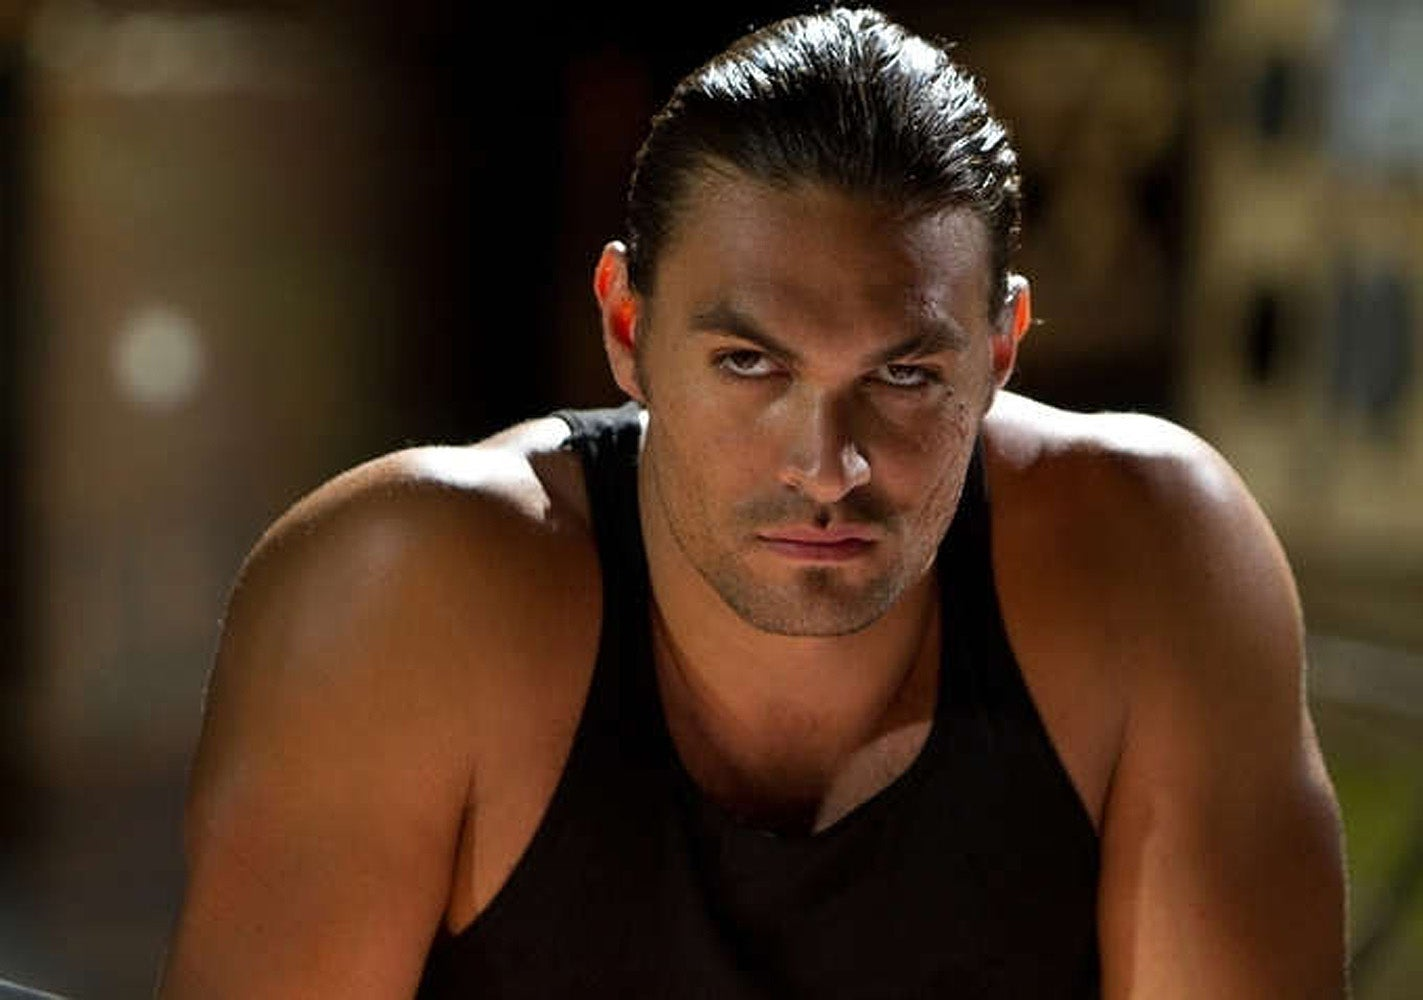 Jason-Momoa-in-Bullet-in-the-Head-2013-Movie-Image